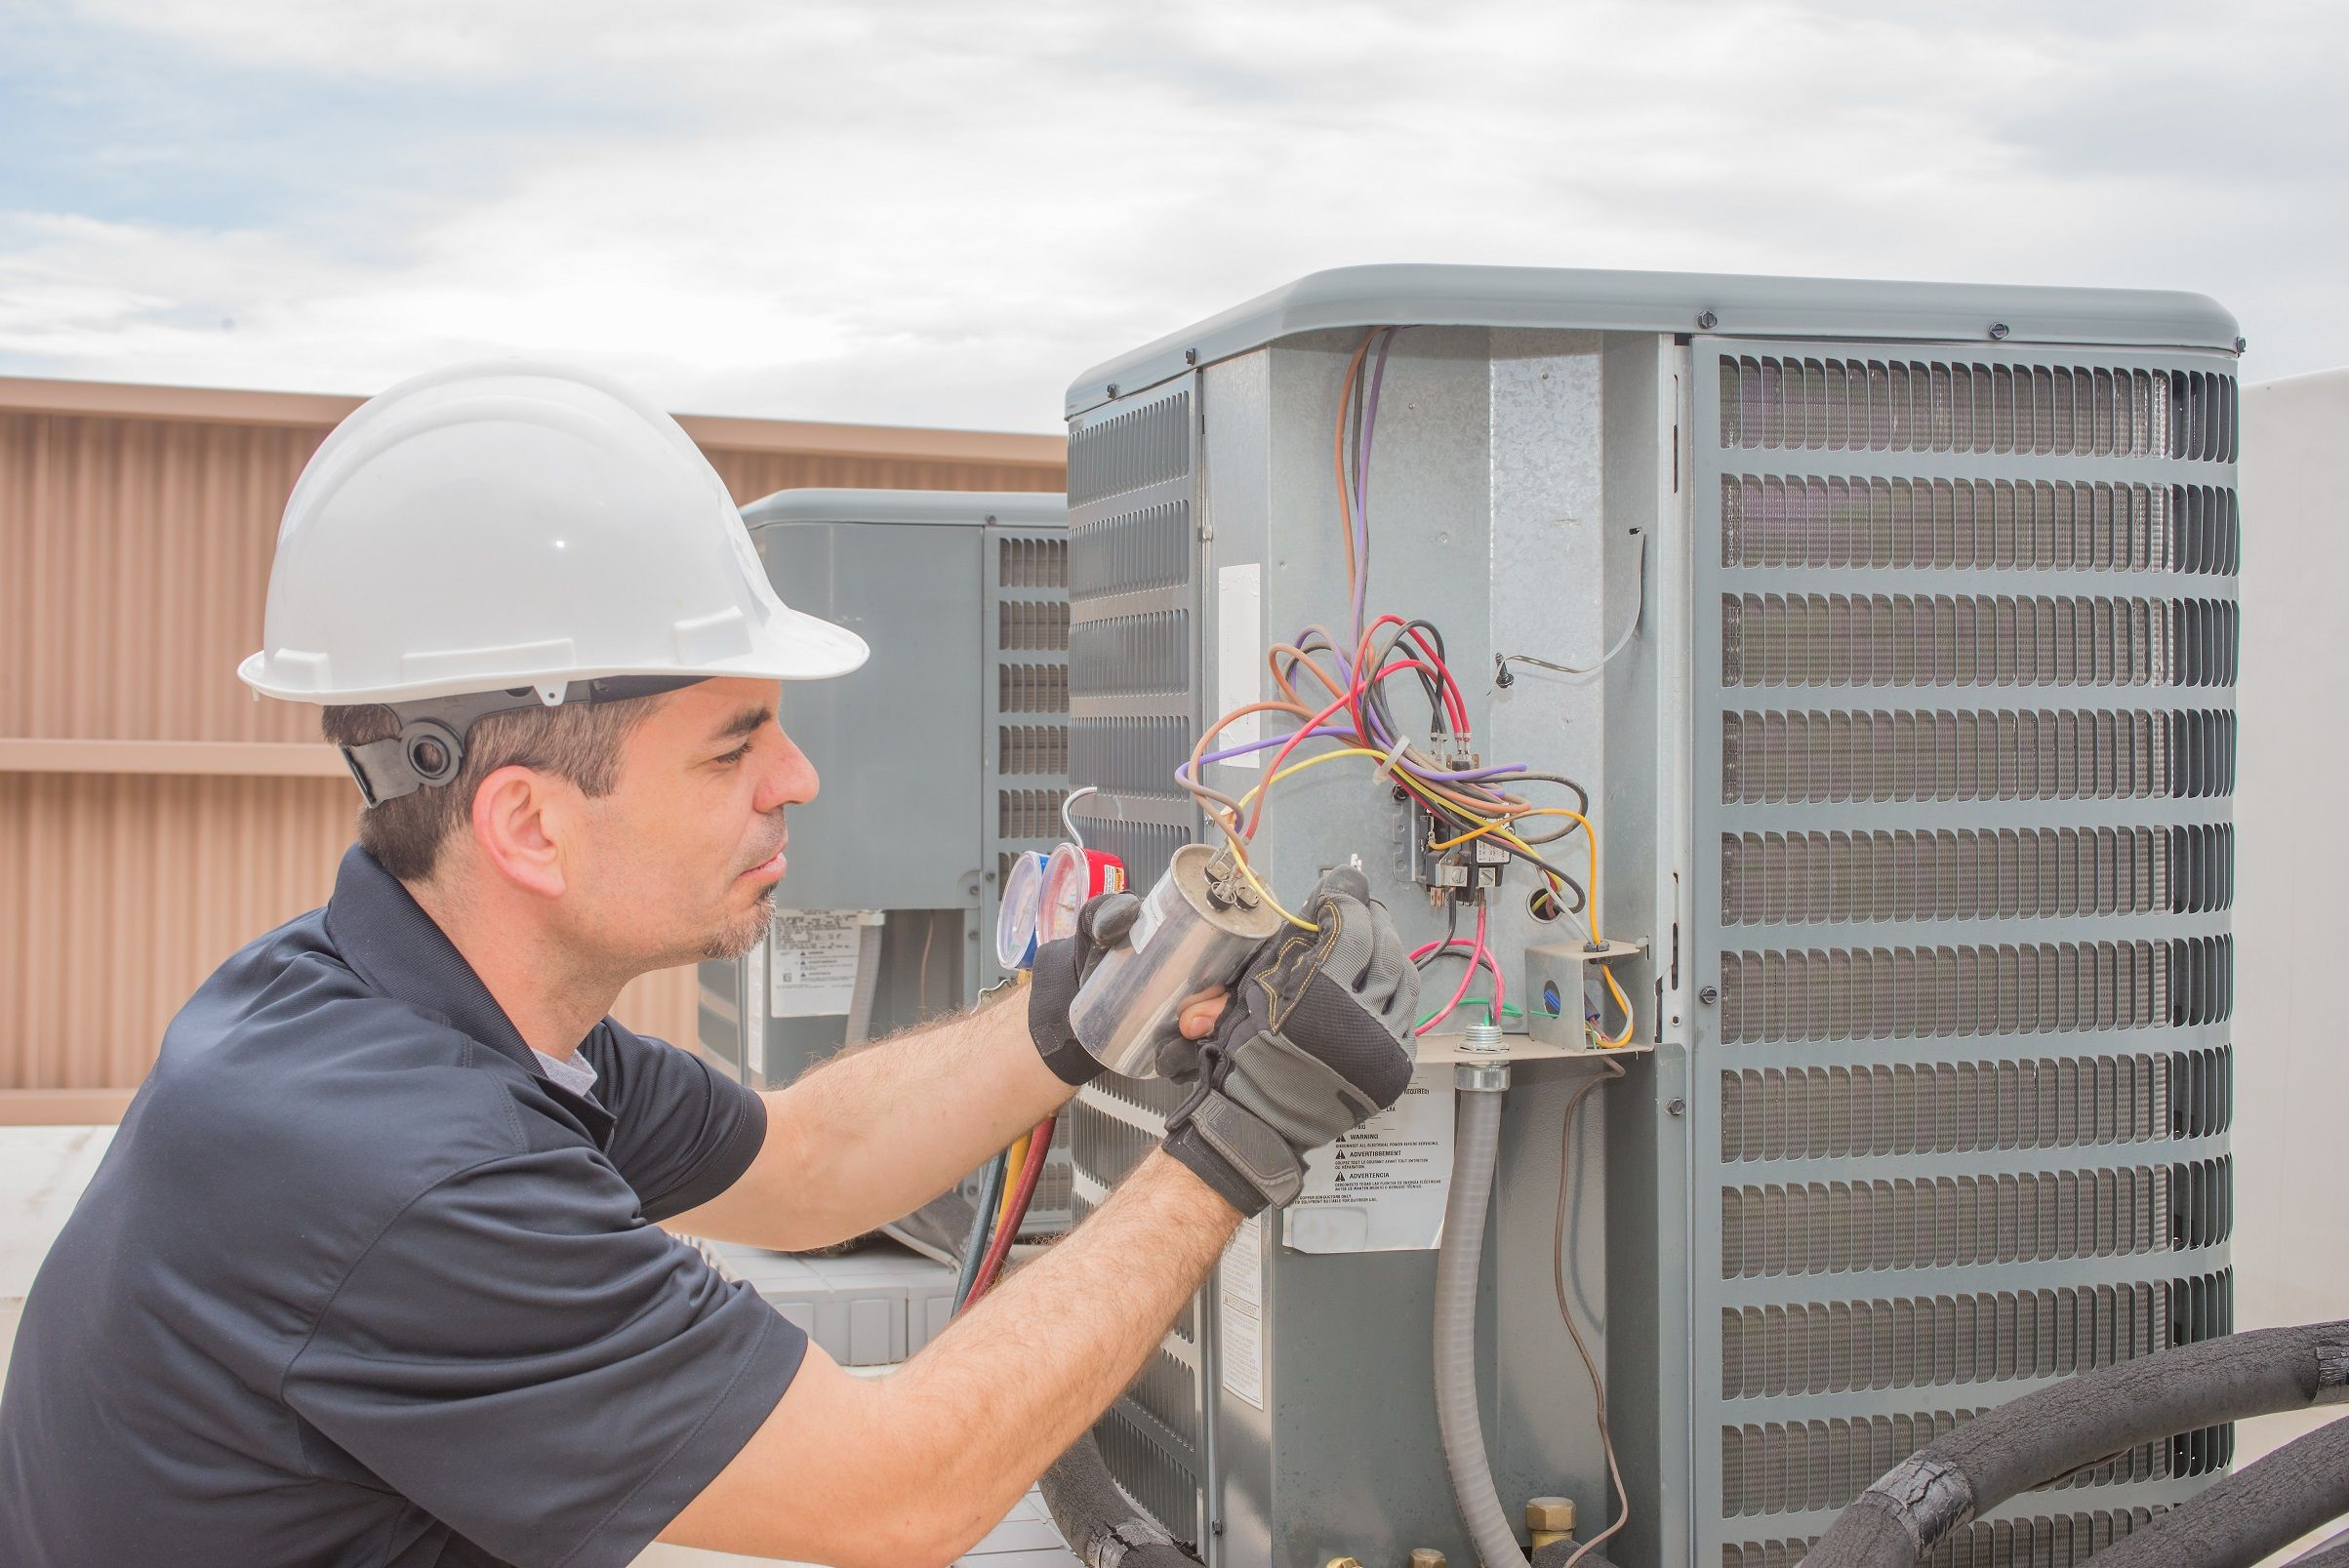 Committed To Delivering Fast Reliable Quality A C Service Based On Integrity And Trust We Air Conditioner Repair Furnace Repair Heating And Air Conditioning